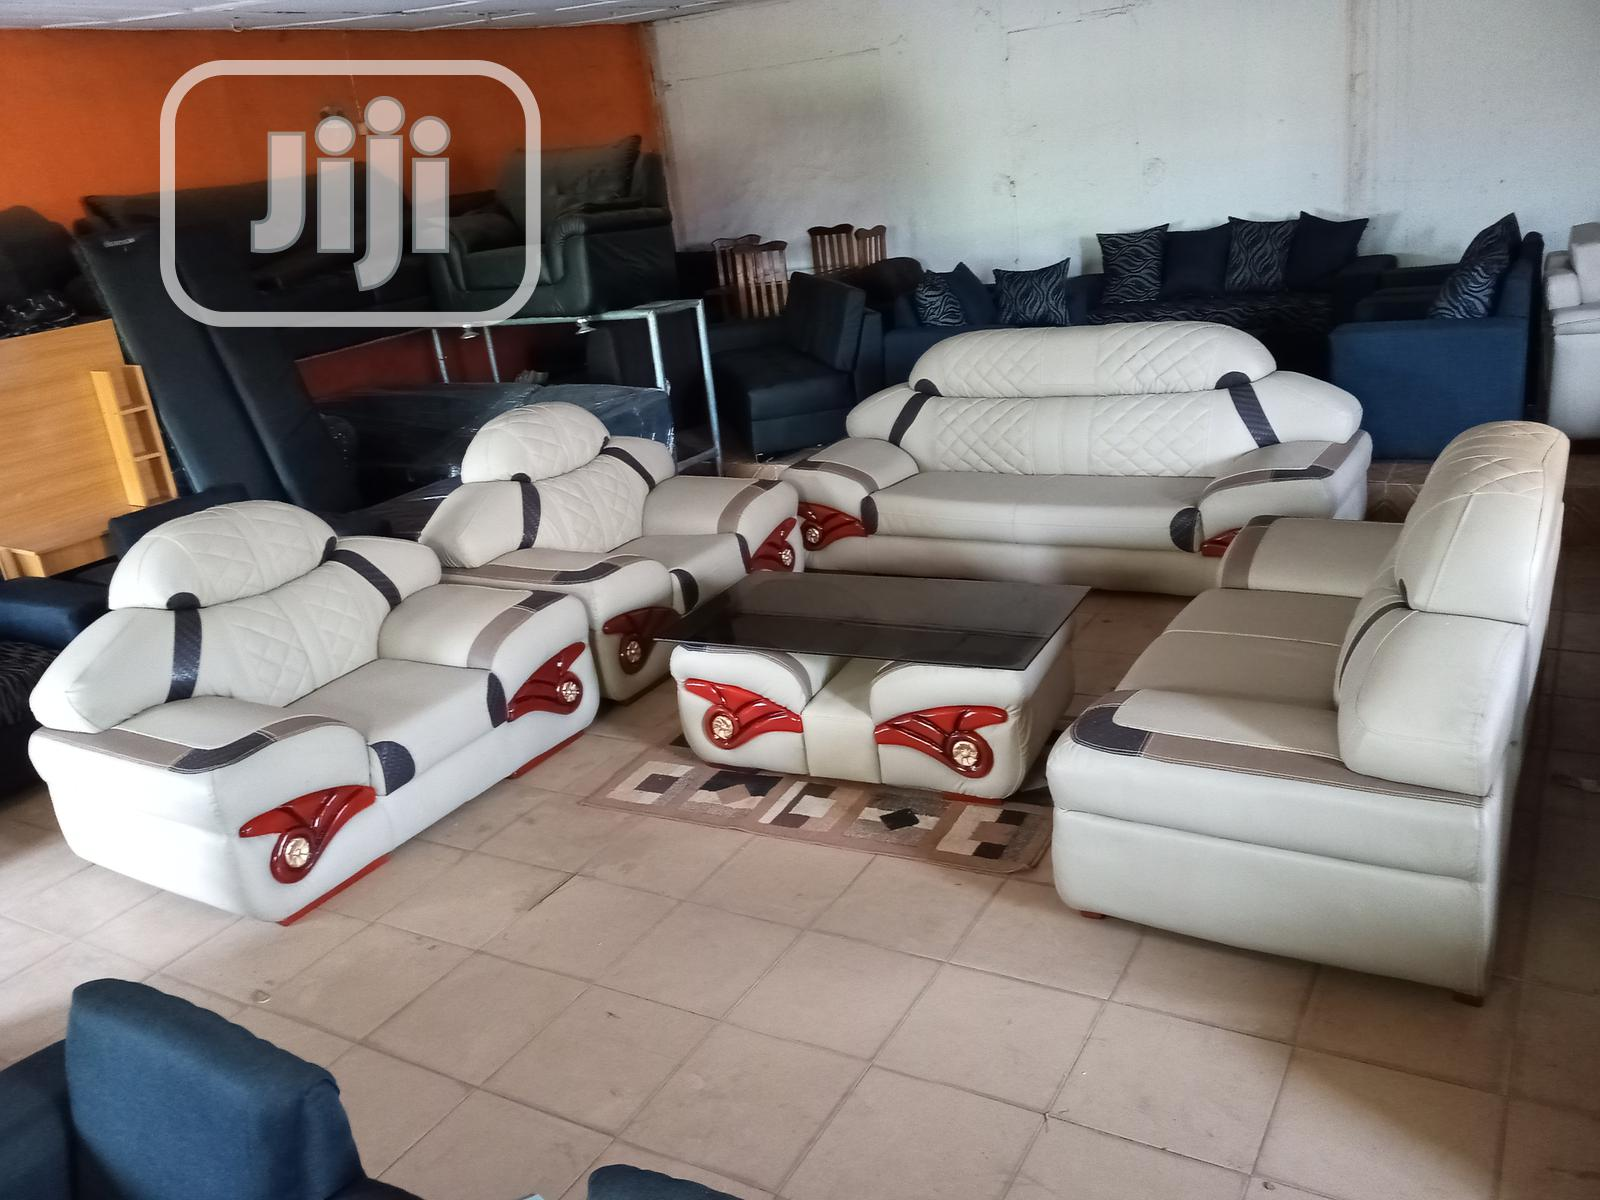 Executive Sofa Chairs With Table. 7 Seaters Leather Couch